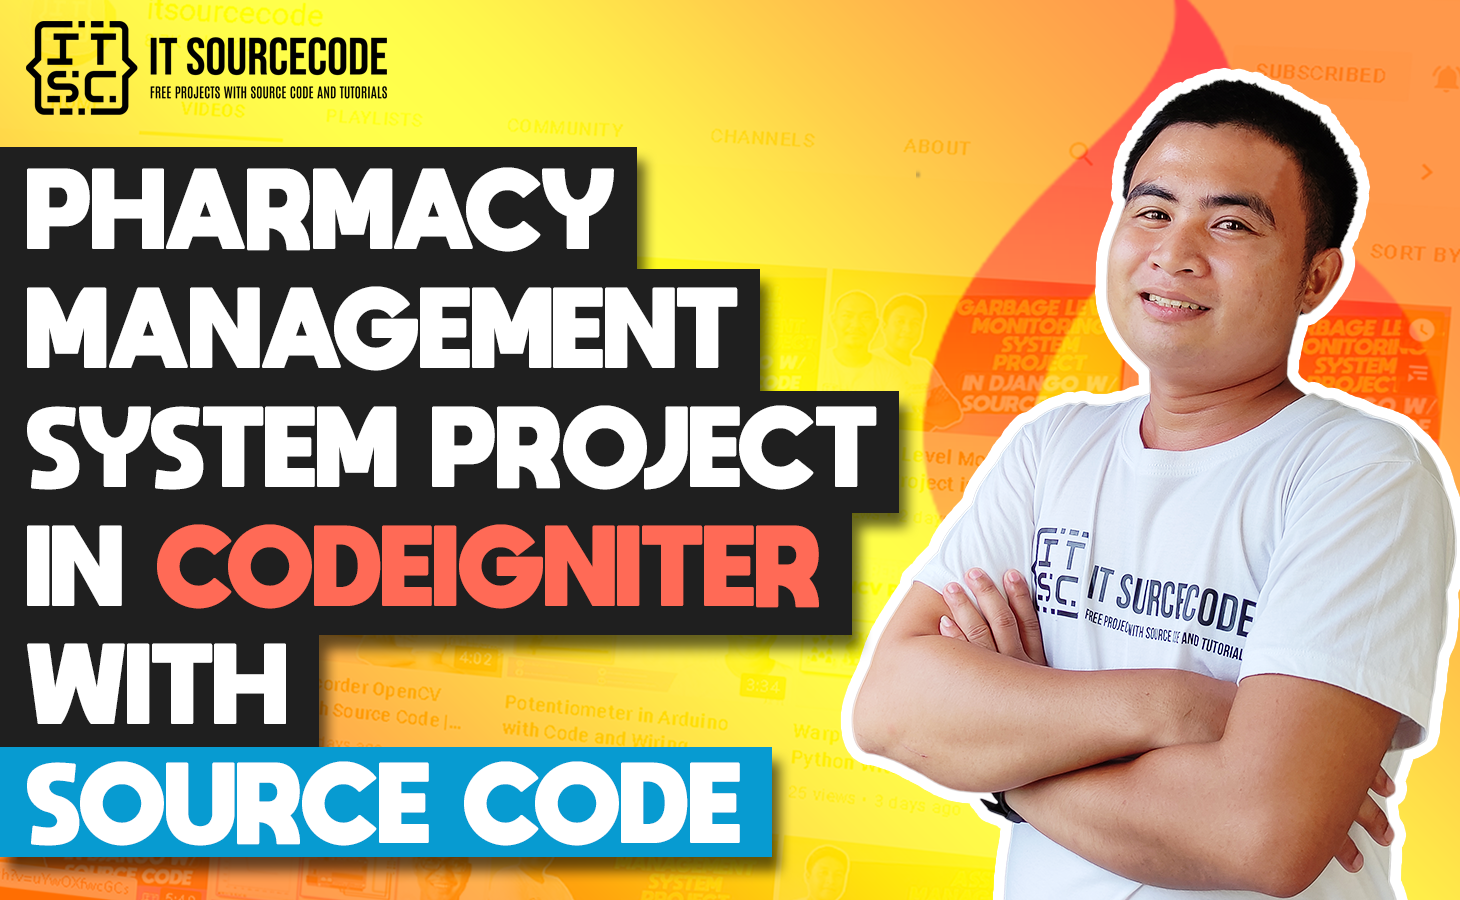 Pharmacy Management System Project In CodeIgniter With Source Code